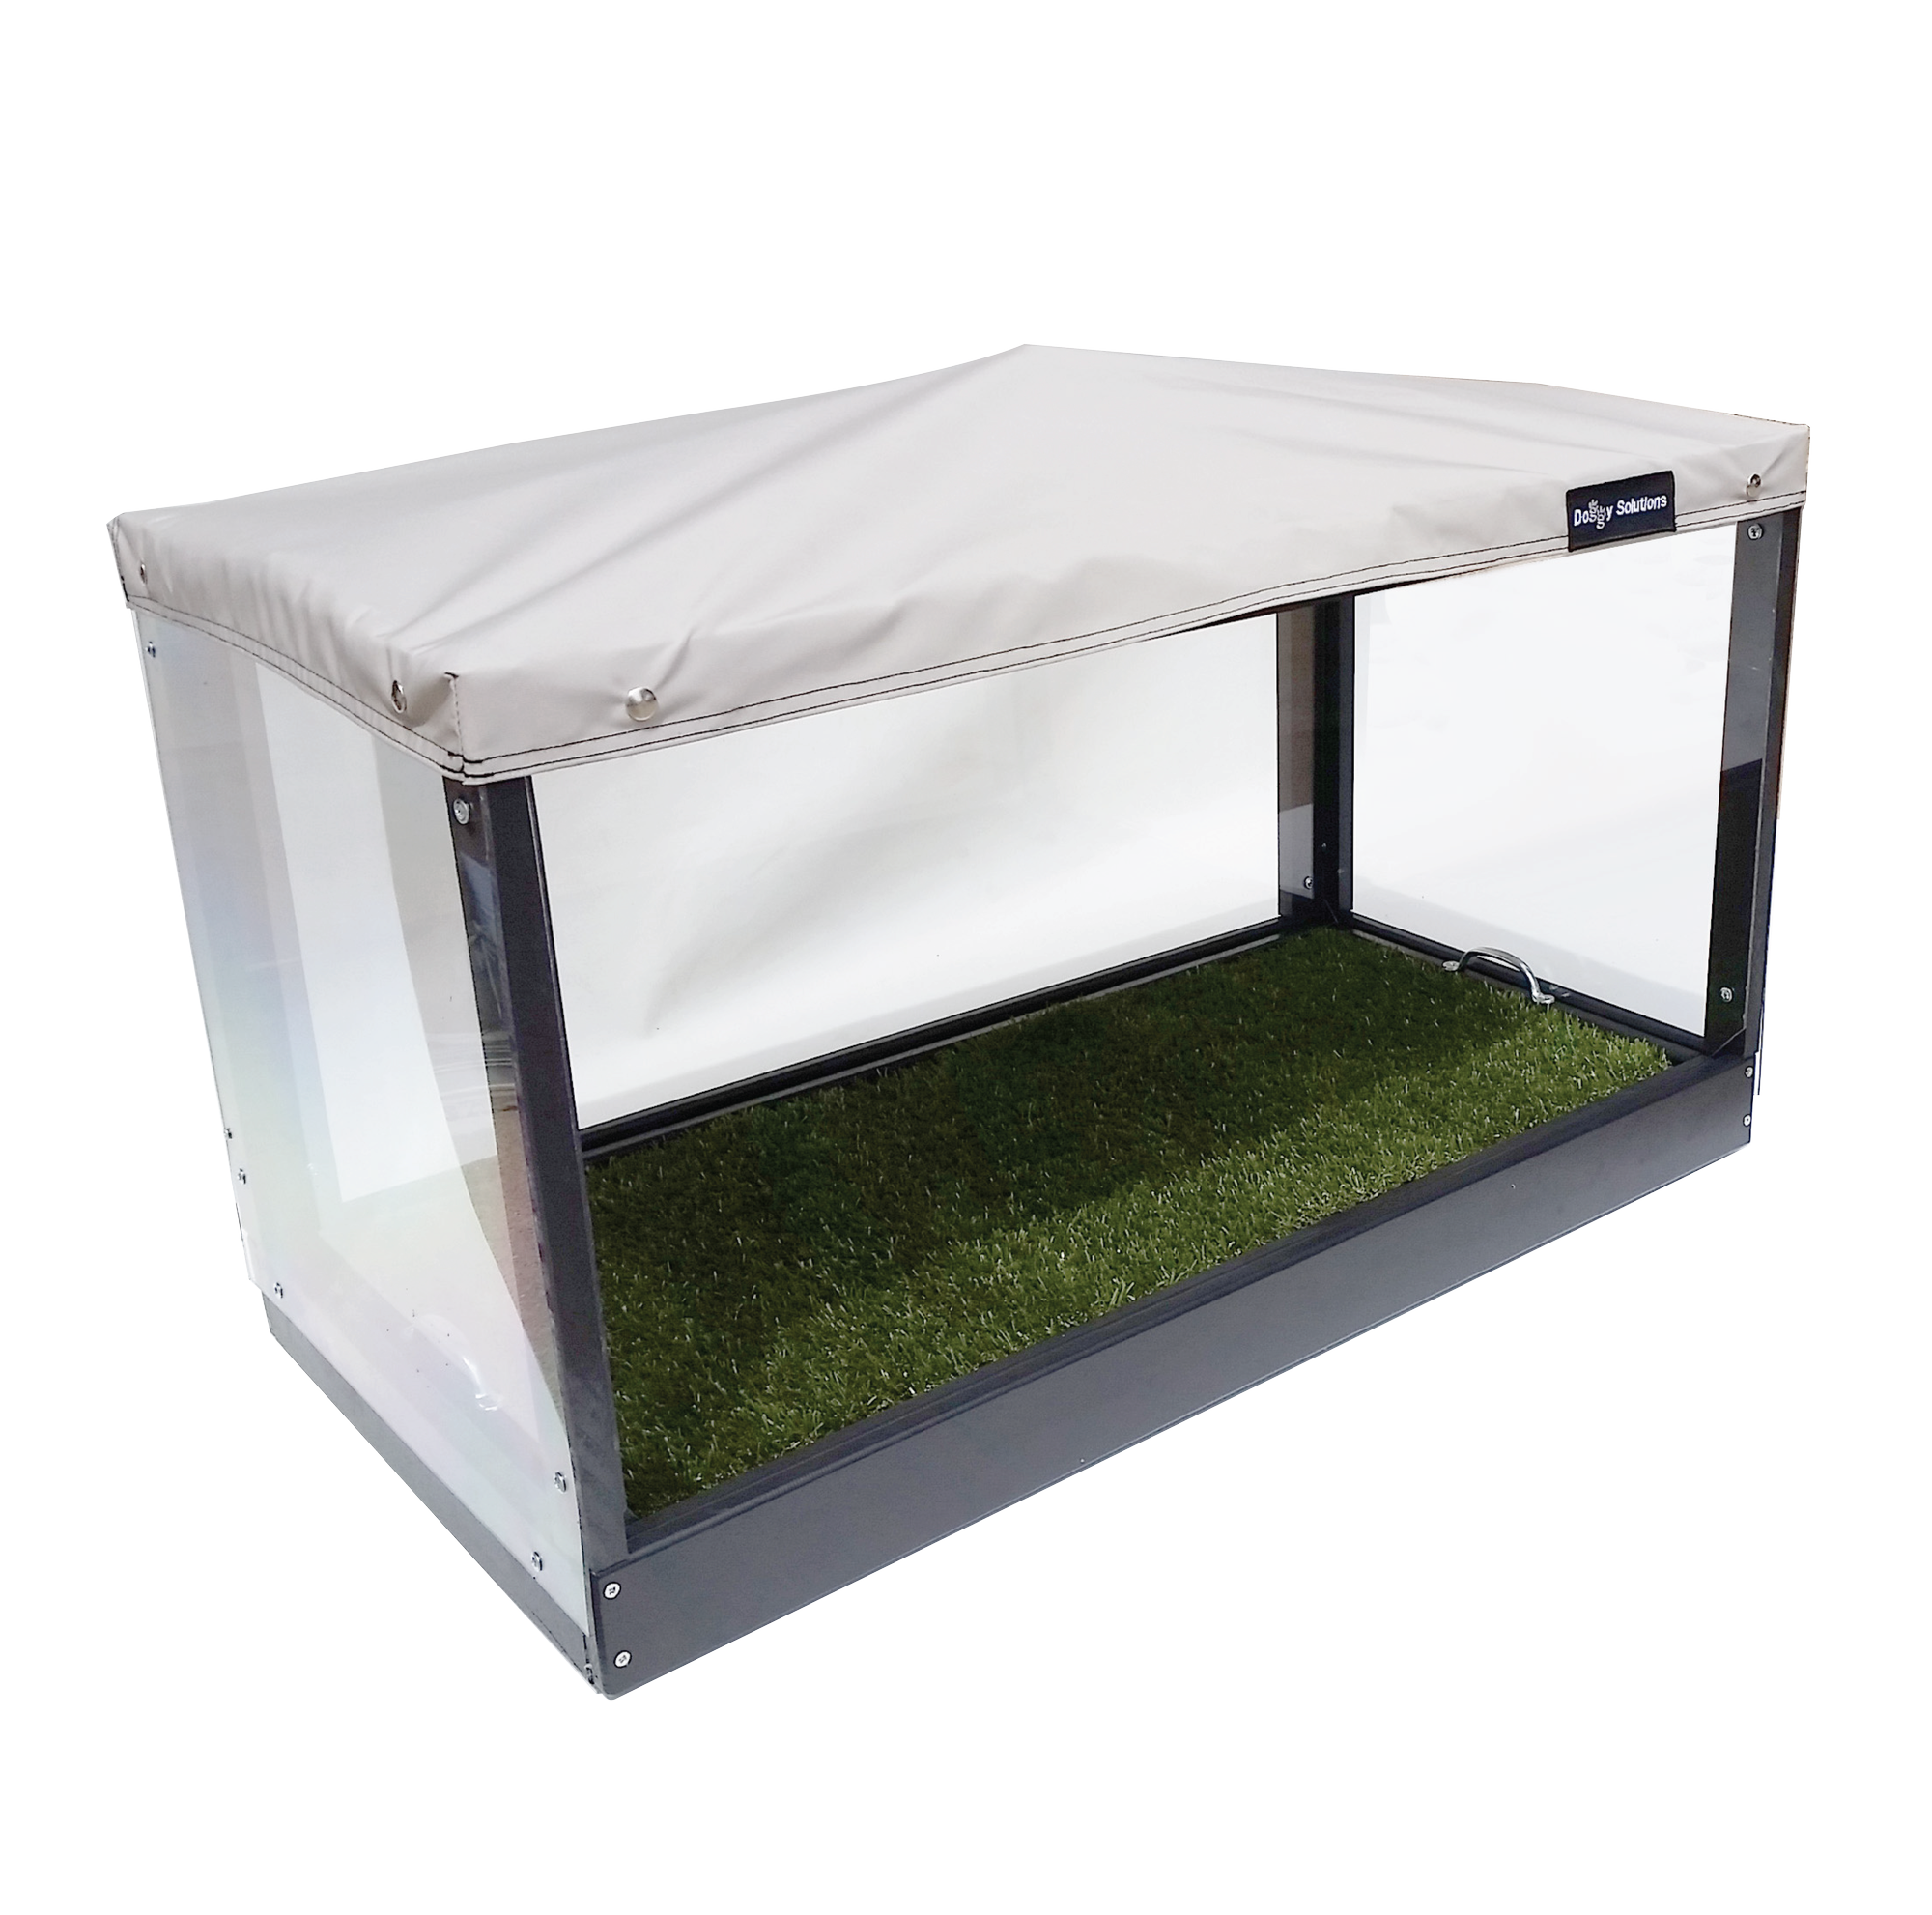 Elevated Canopy Pet Patio Potty u2013 Small  sc 1 st  Doggy Solutions & Elevated Canopy Pet Potty Small Dog Litter Box - Doggy Solutions